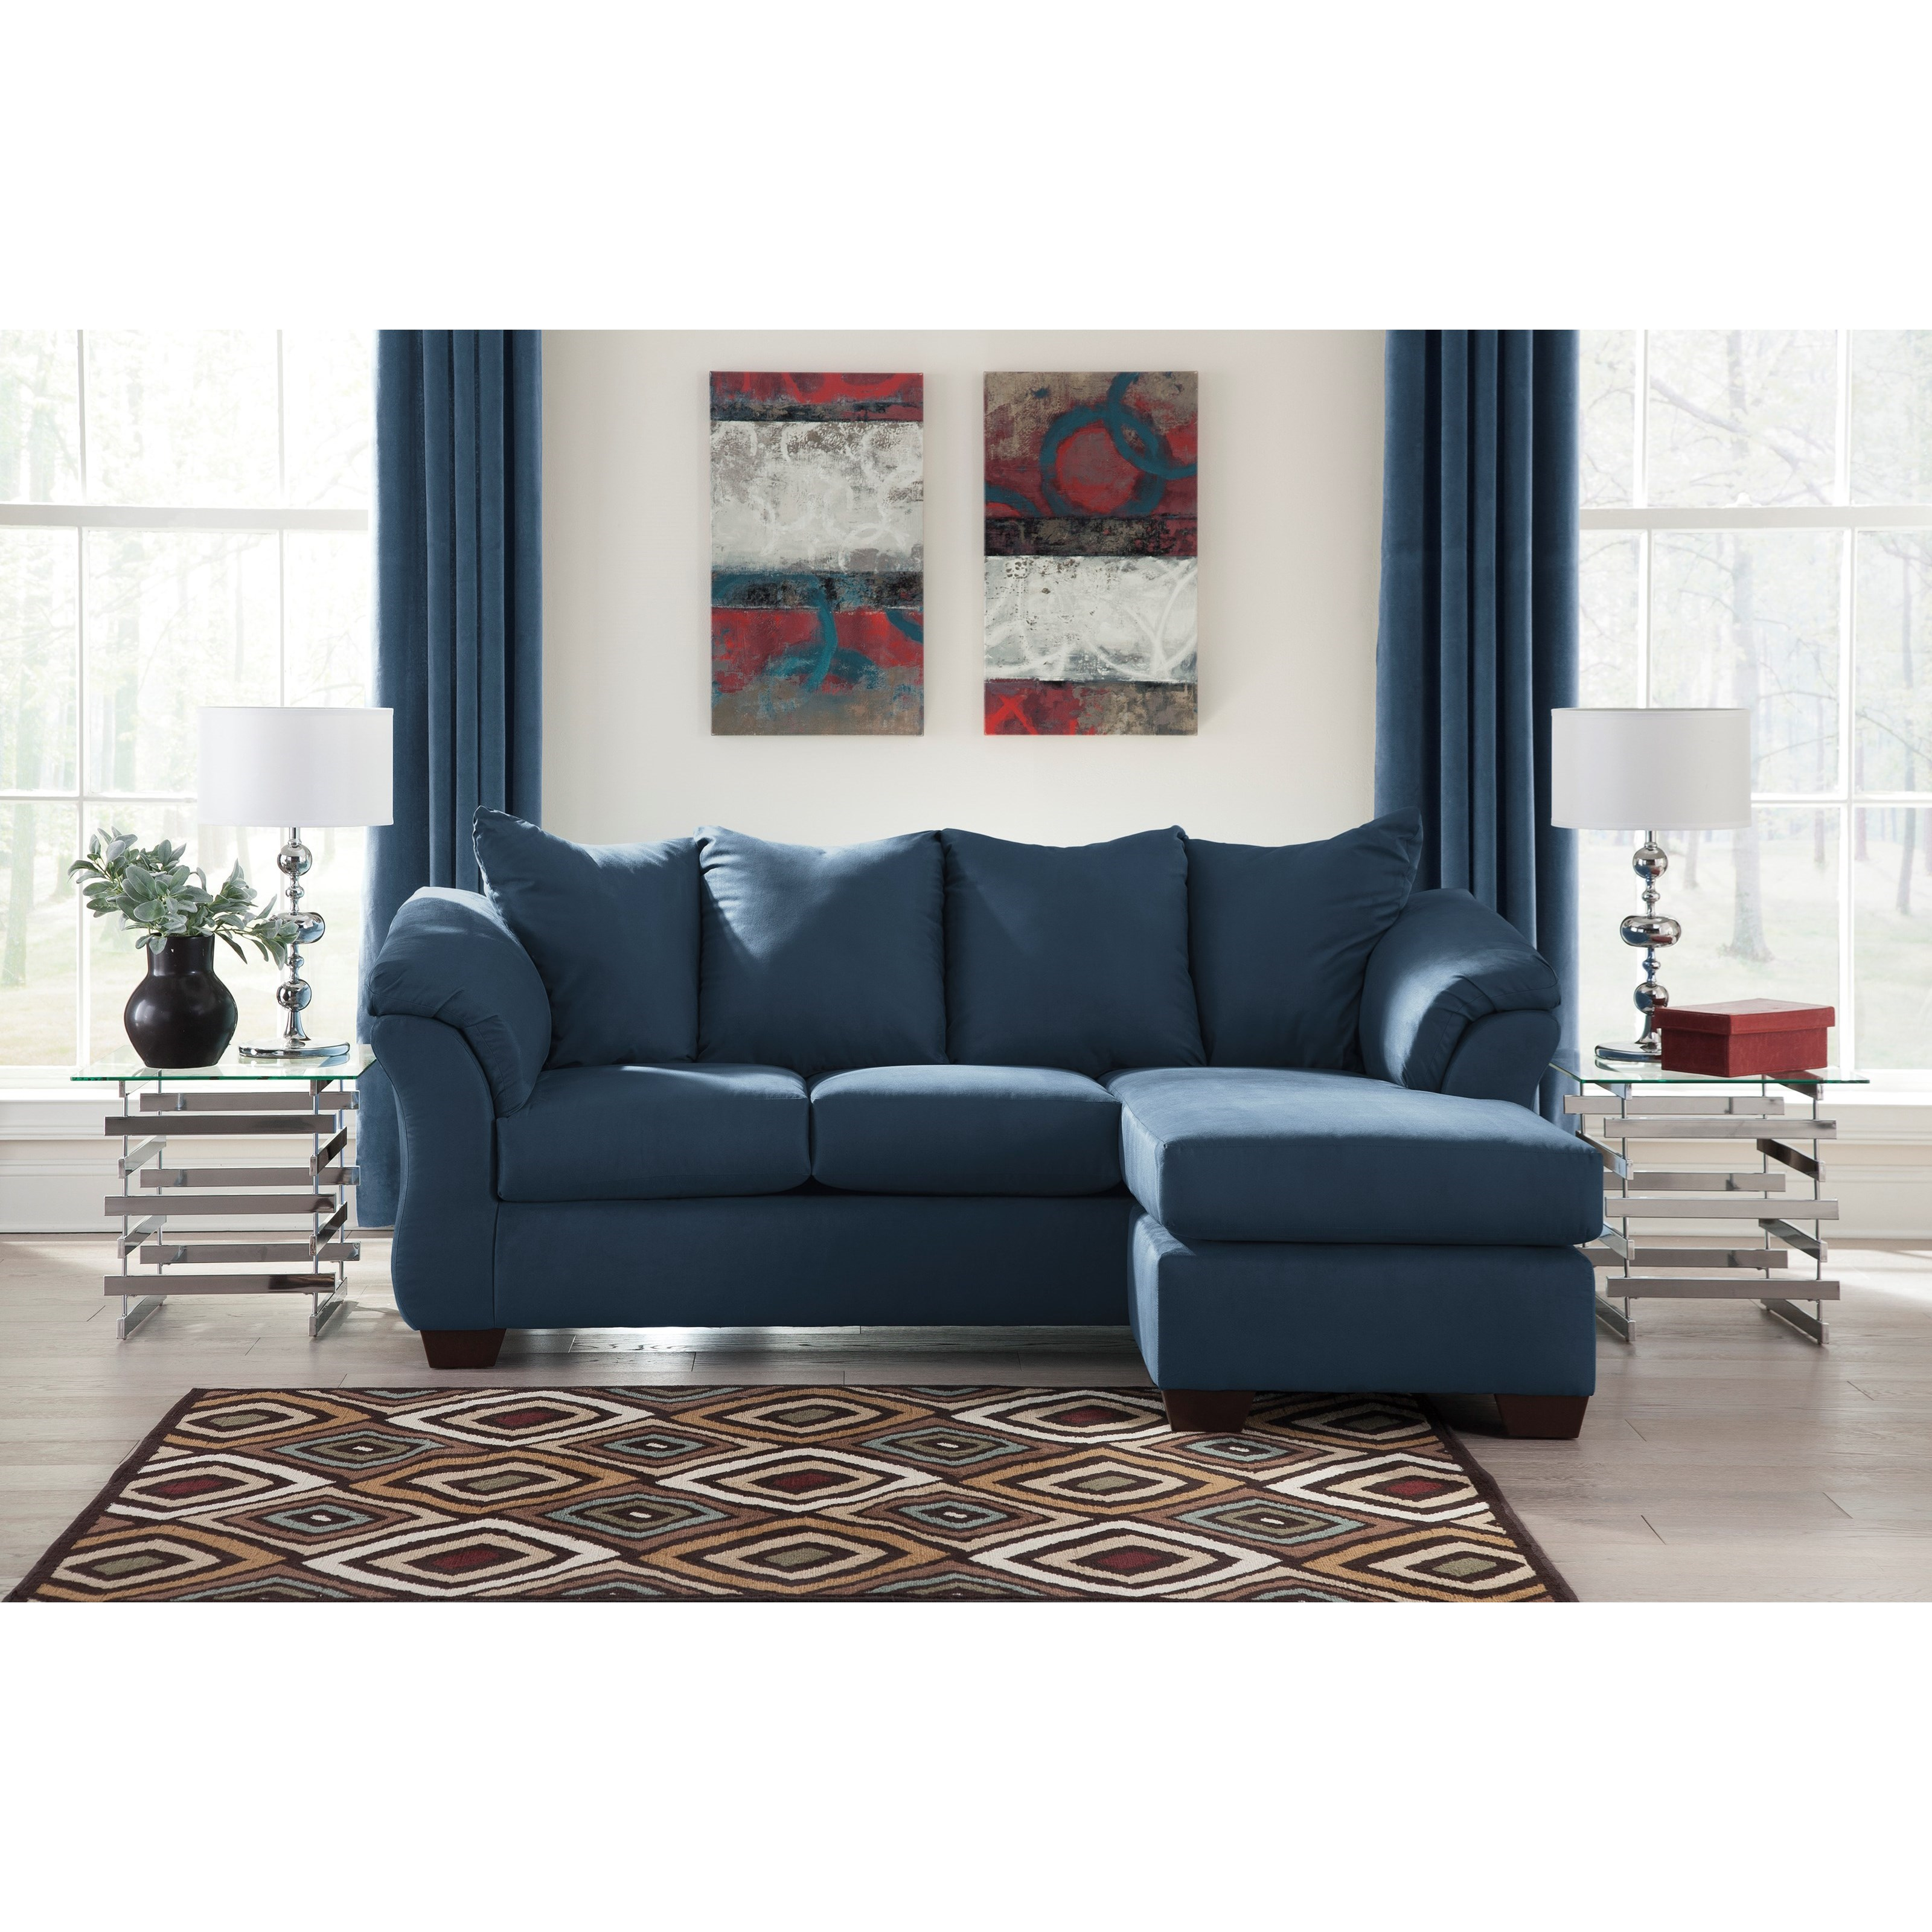 Contemporary Sofa Chaise With Flared Back Pillows By